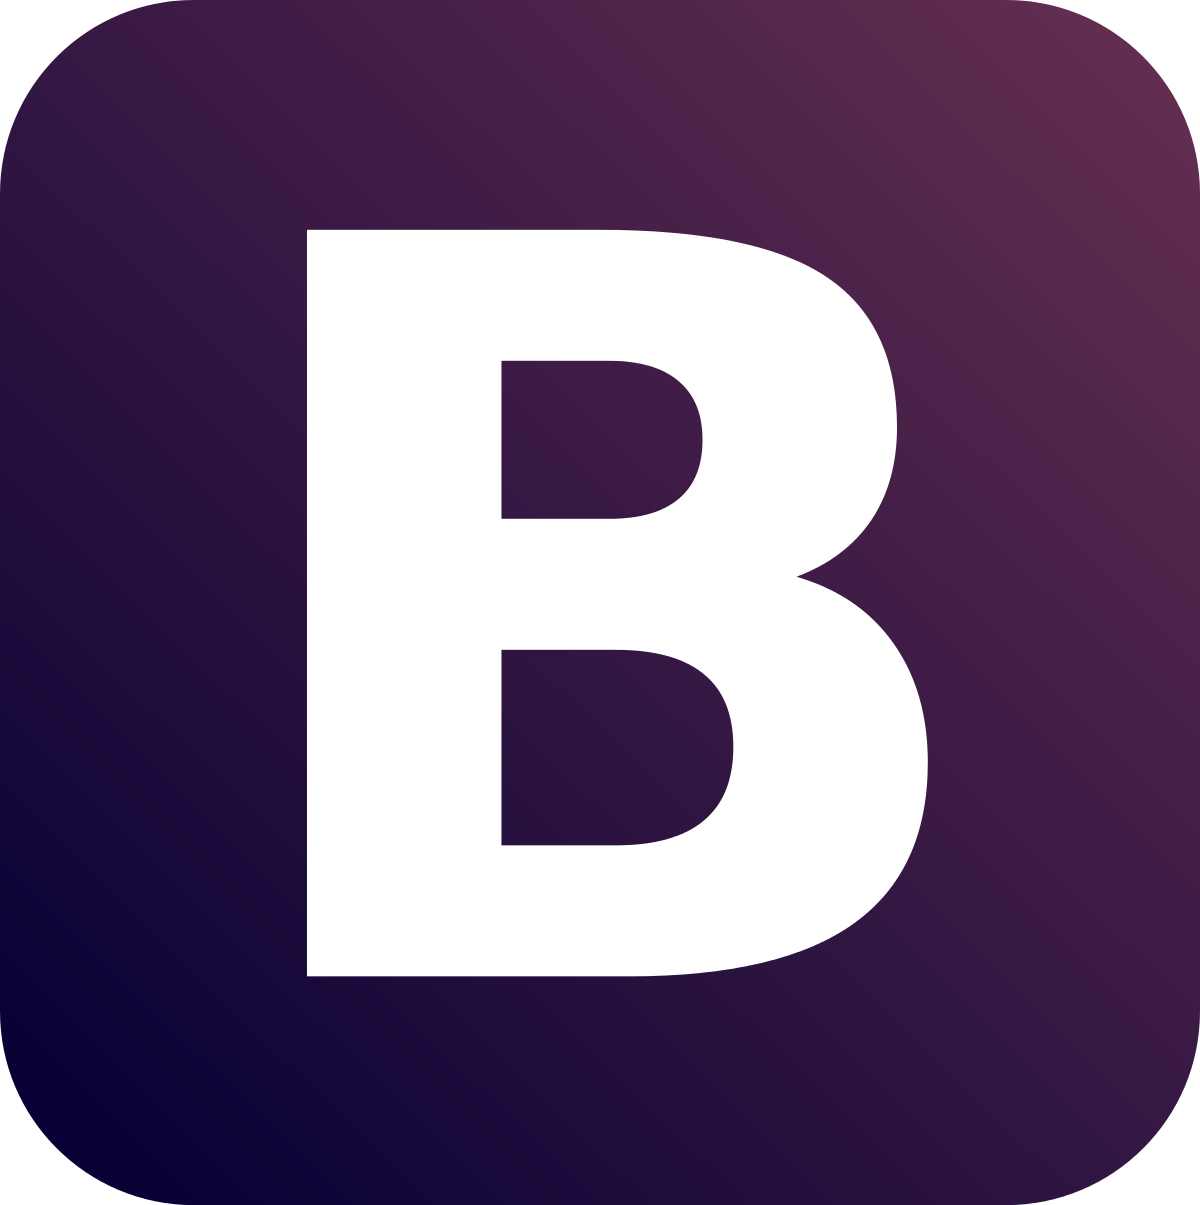 Bootstrap responsive clipart image stock Bootstrap (front-end framework) - Wikipedia image stock